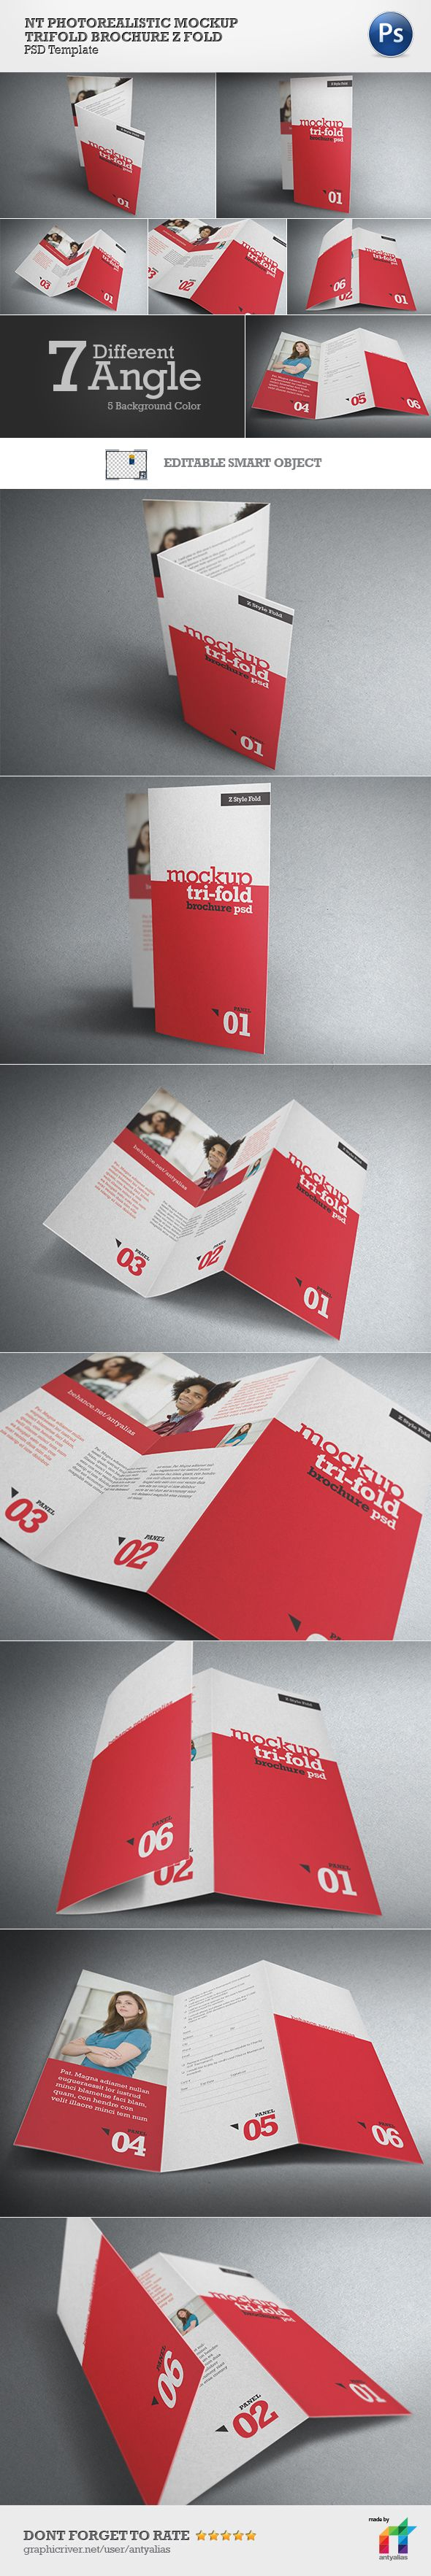 NT Photorealistic Mockup Trifold Brochure Z Style on Behance